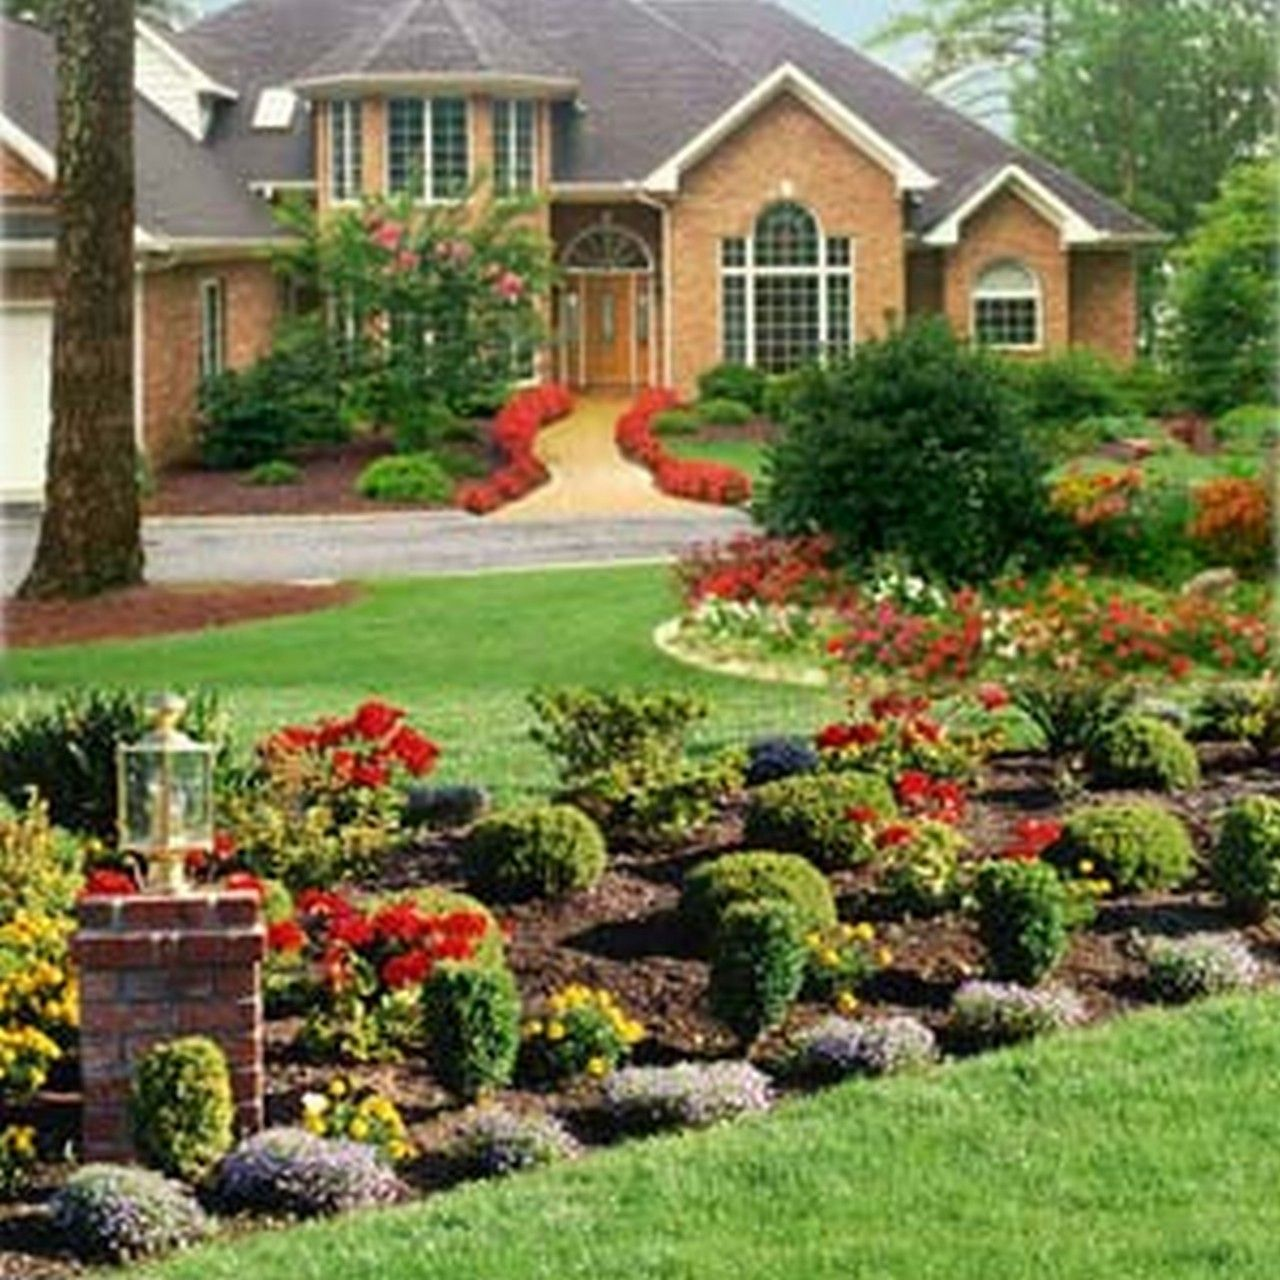 I like the way they lined the front walkway. Breathtaking Landscaping Ideas For Front Of House Blueprint Great Garden Landscaping Ideas Scenic Implements Balance, 7 Landscape Design Beauteous Landscaping Inspiration Scenic Landscape Ideas For Small Yard Mediterranean Style